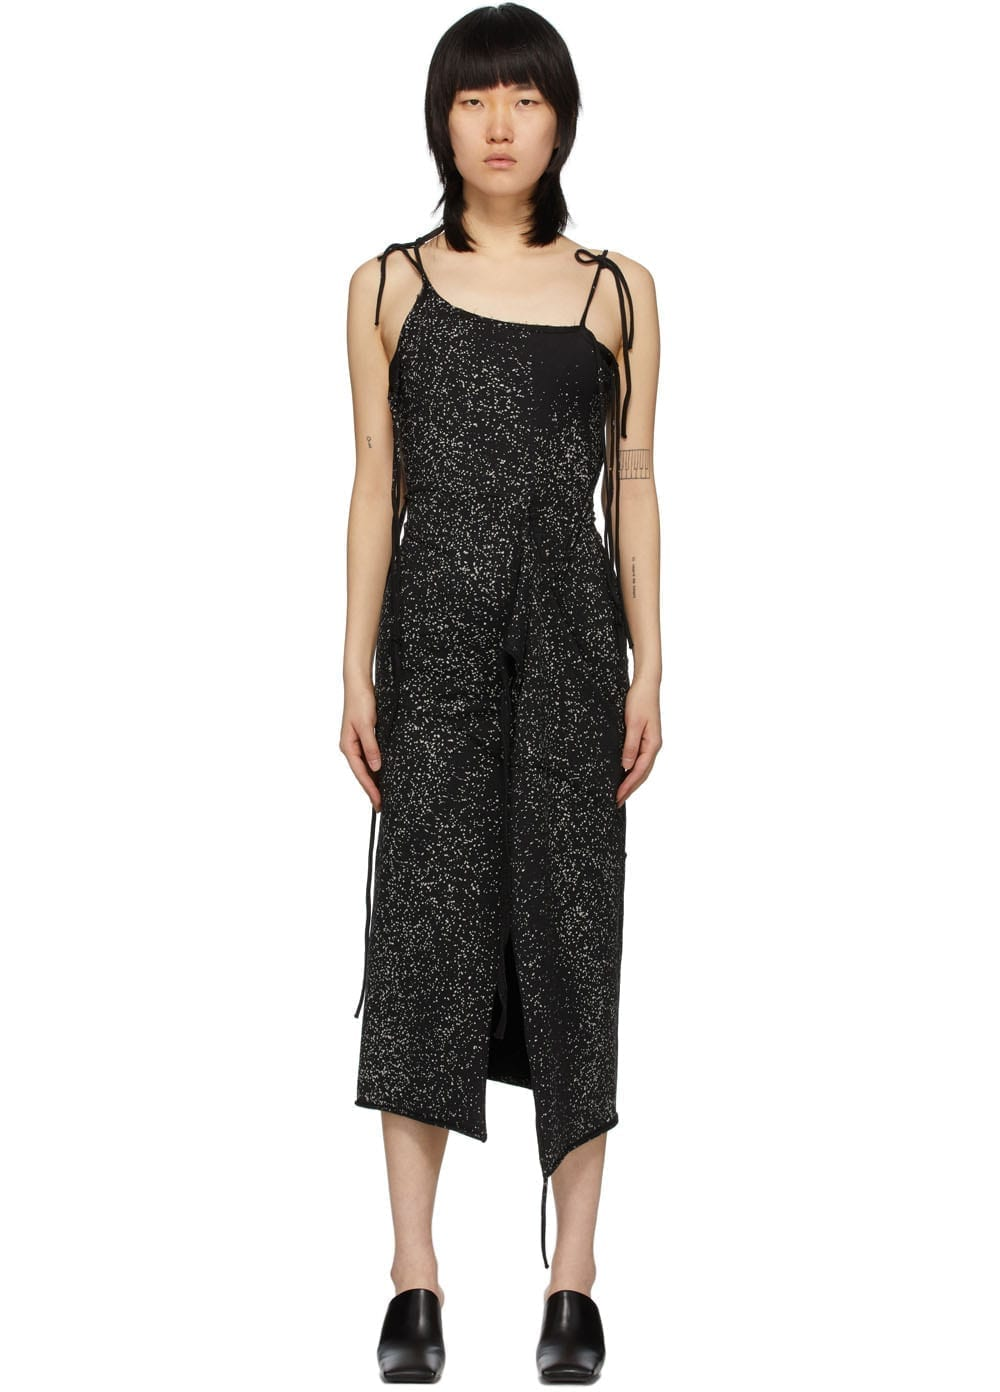 OTTOLINGER Black & Grey Speckled Strap Dress